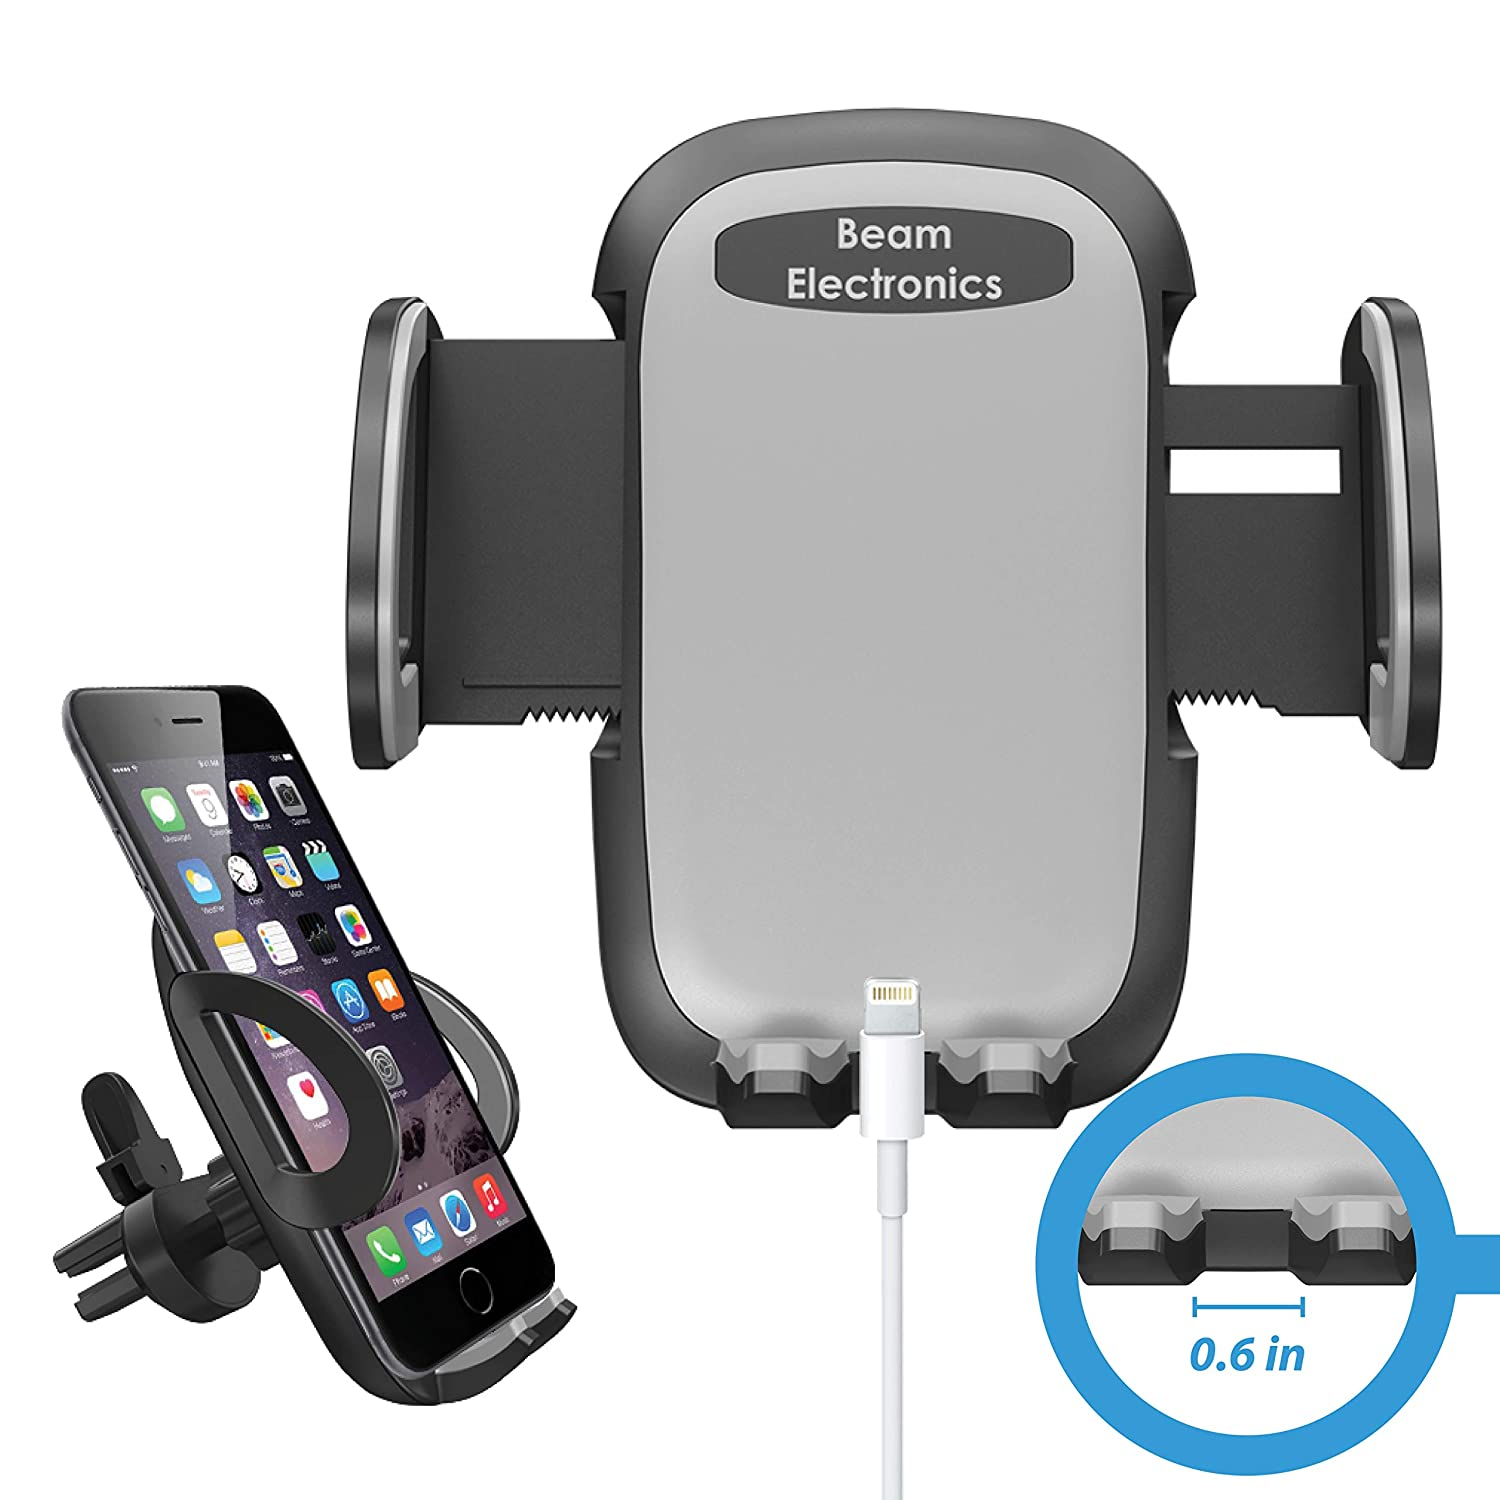 7 7 6 5s 4 Samsung Galaxy S10 S9 S8 S7 S6 S5 S4 LG Nexus Black Beam Electronics Universal Smartphone Car Air Vent Mount Holder Cradle Compatible with iPhone Xs XS Max XR X 8 8 SE 6s 6